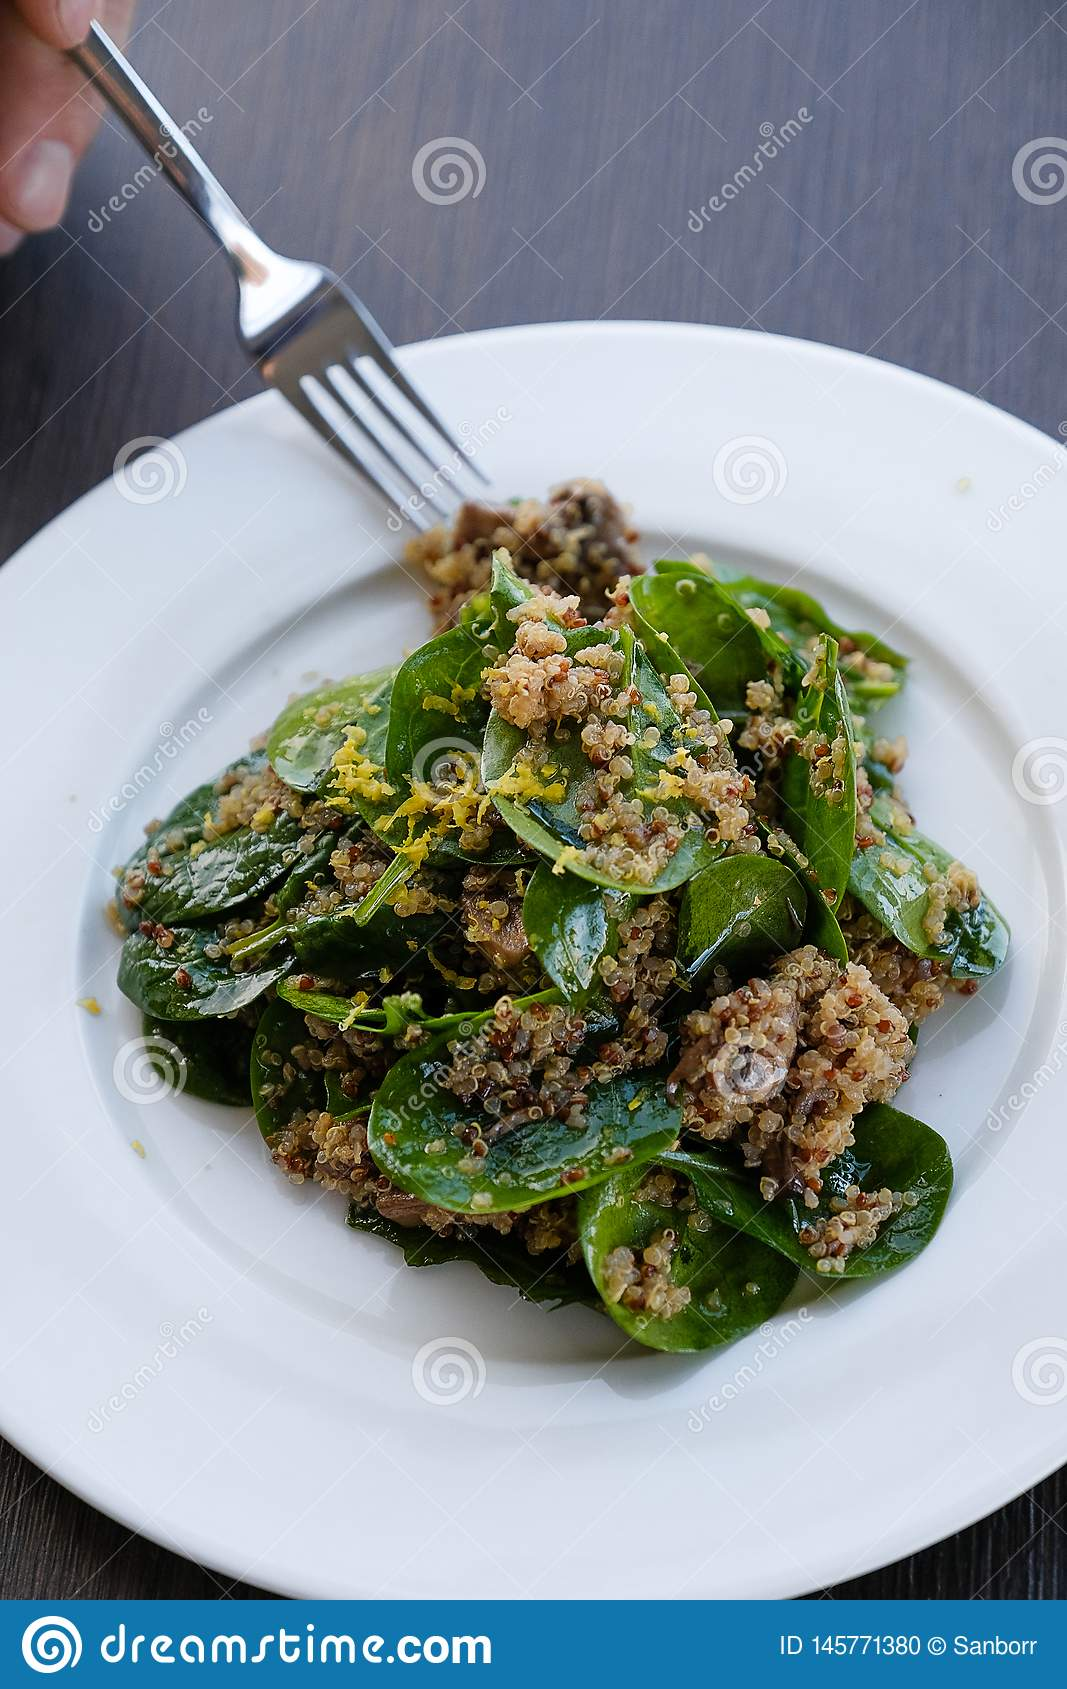 Salad with Quinoa and herbs. Vegetarian dish, food. Vegan dish. Vegetarian and vegan diet. Healthy food. Health food. Proper diet